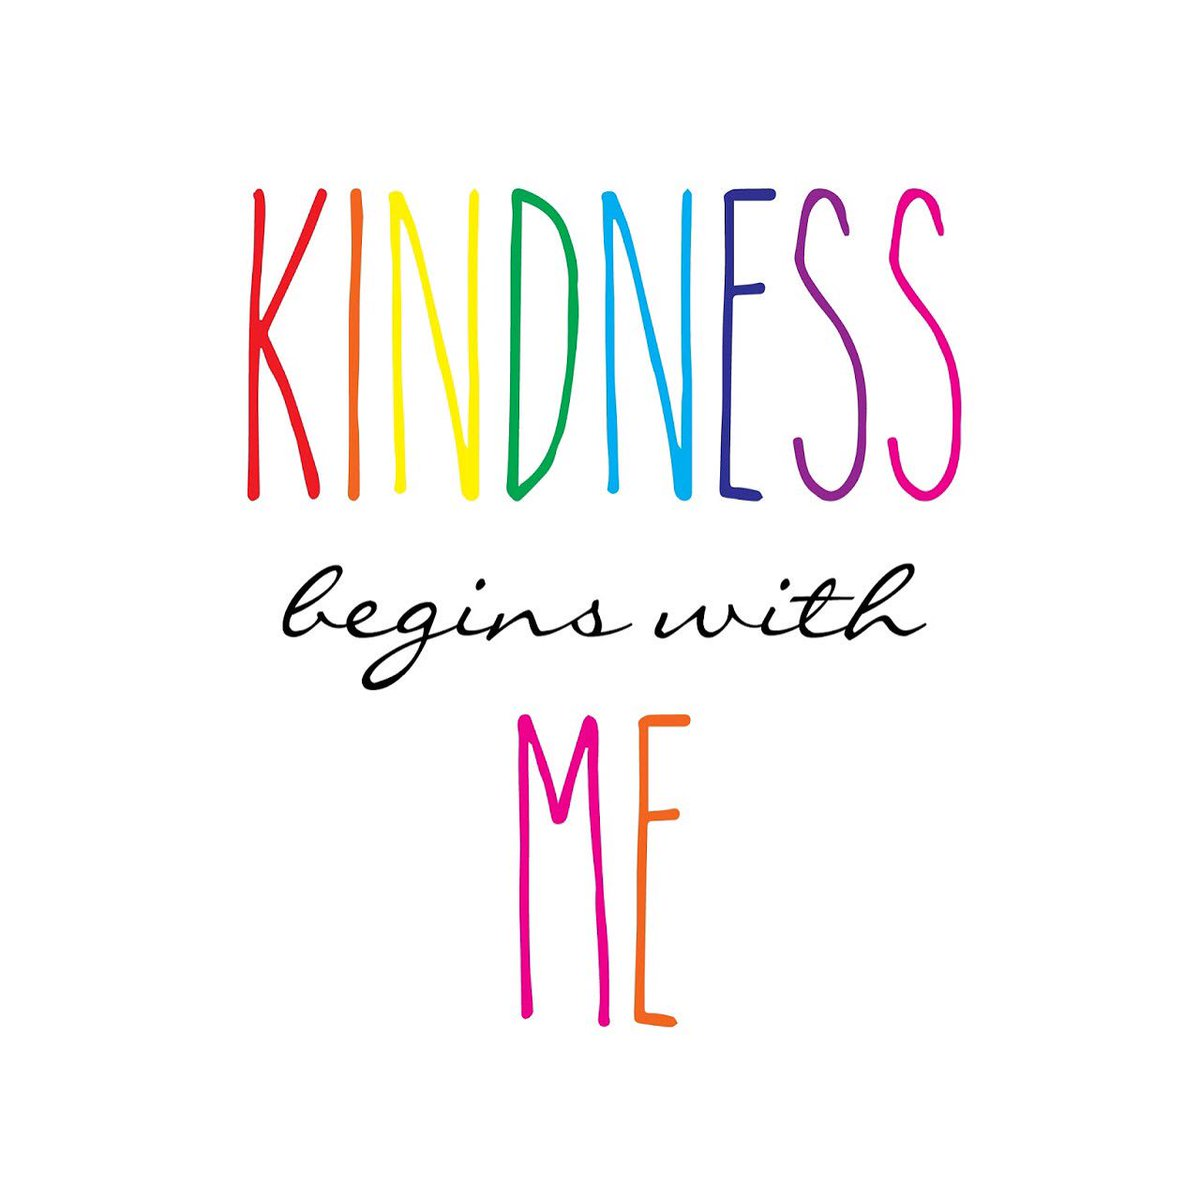 ...I then choose once again to discover more deeply how to be kind to myself ... and therefor to others.  #lovewins https://t.co/Zjpf5ZhaK3